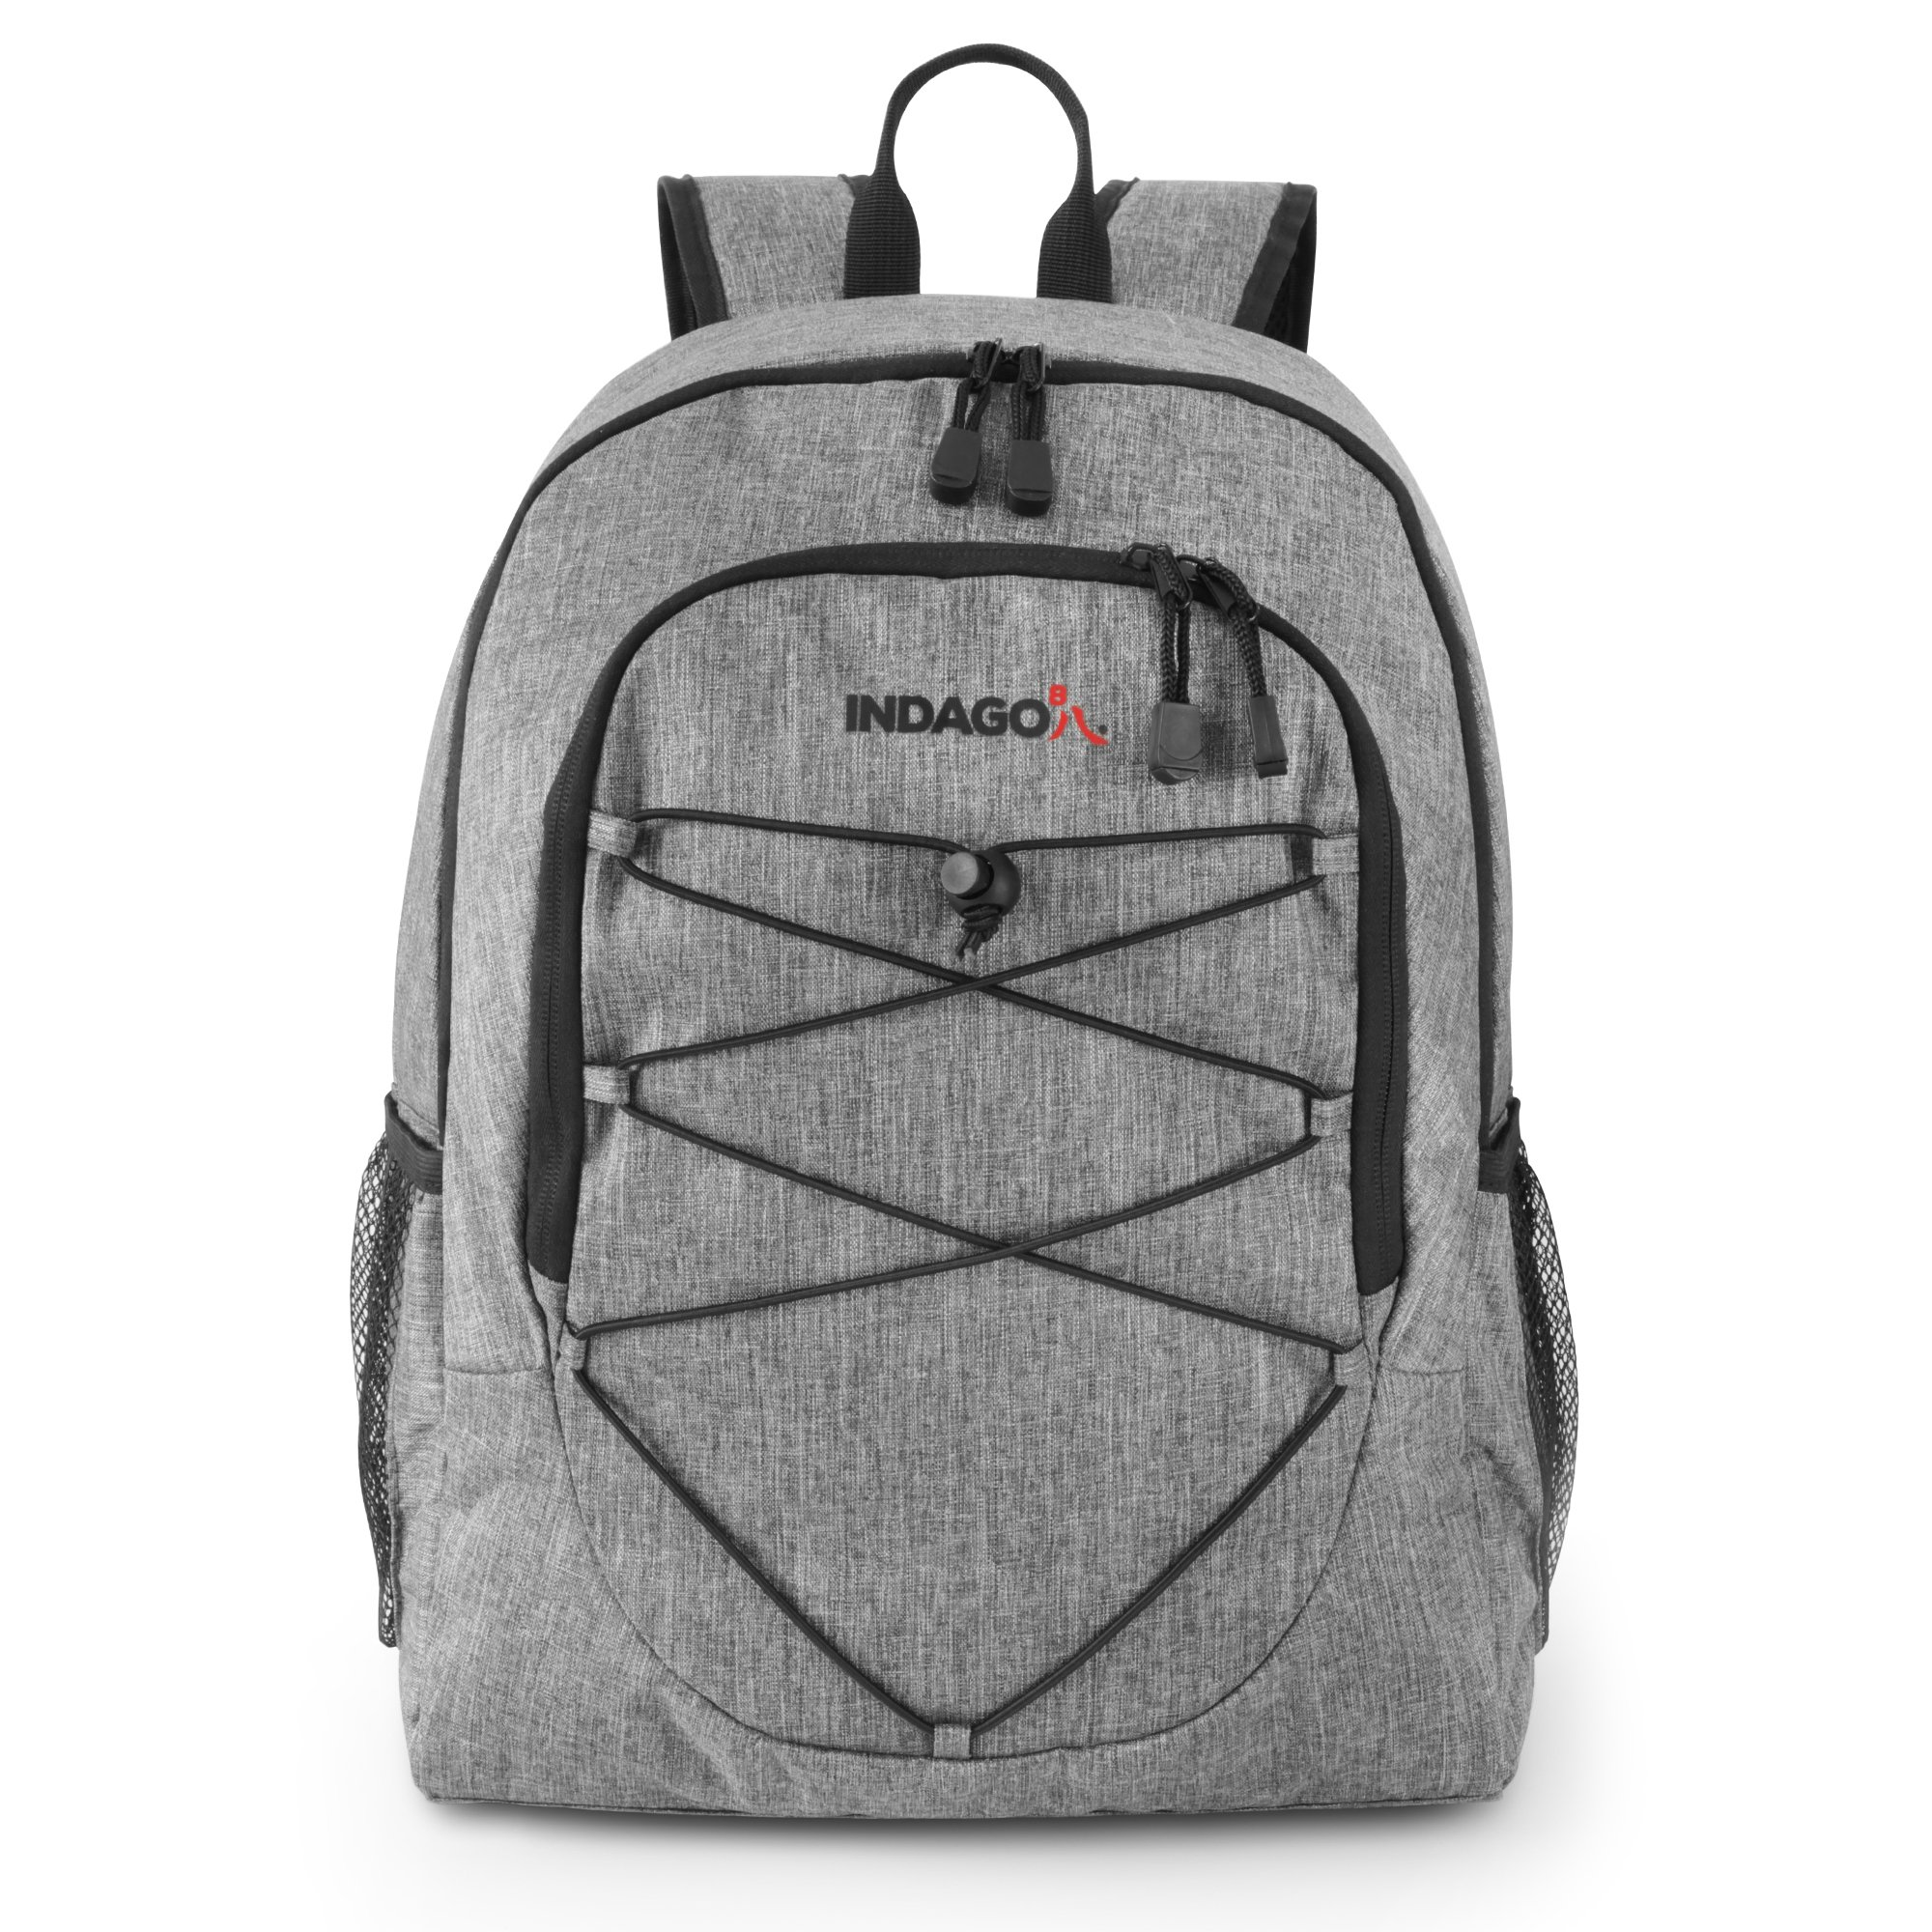 28 L Insulated Soft Backpack Cooler - Lightweight Bag for Men & Women. Ideal for Camping, Hiking, Picnics & Day Trips